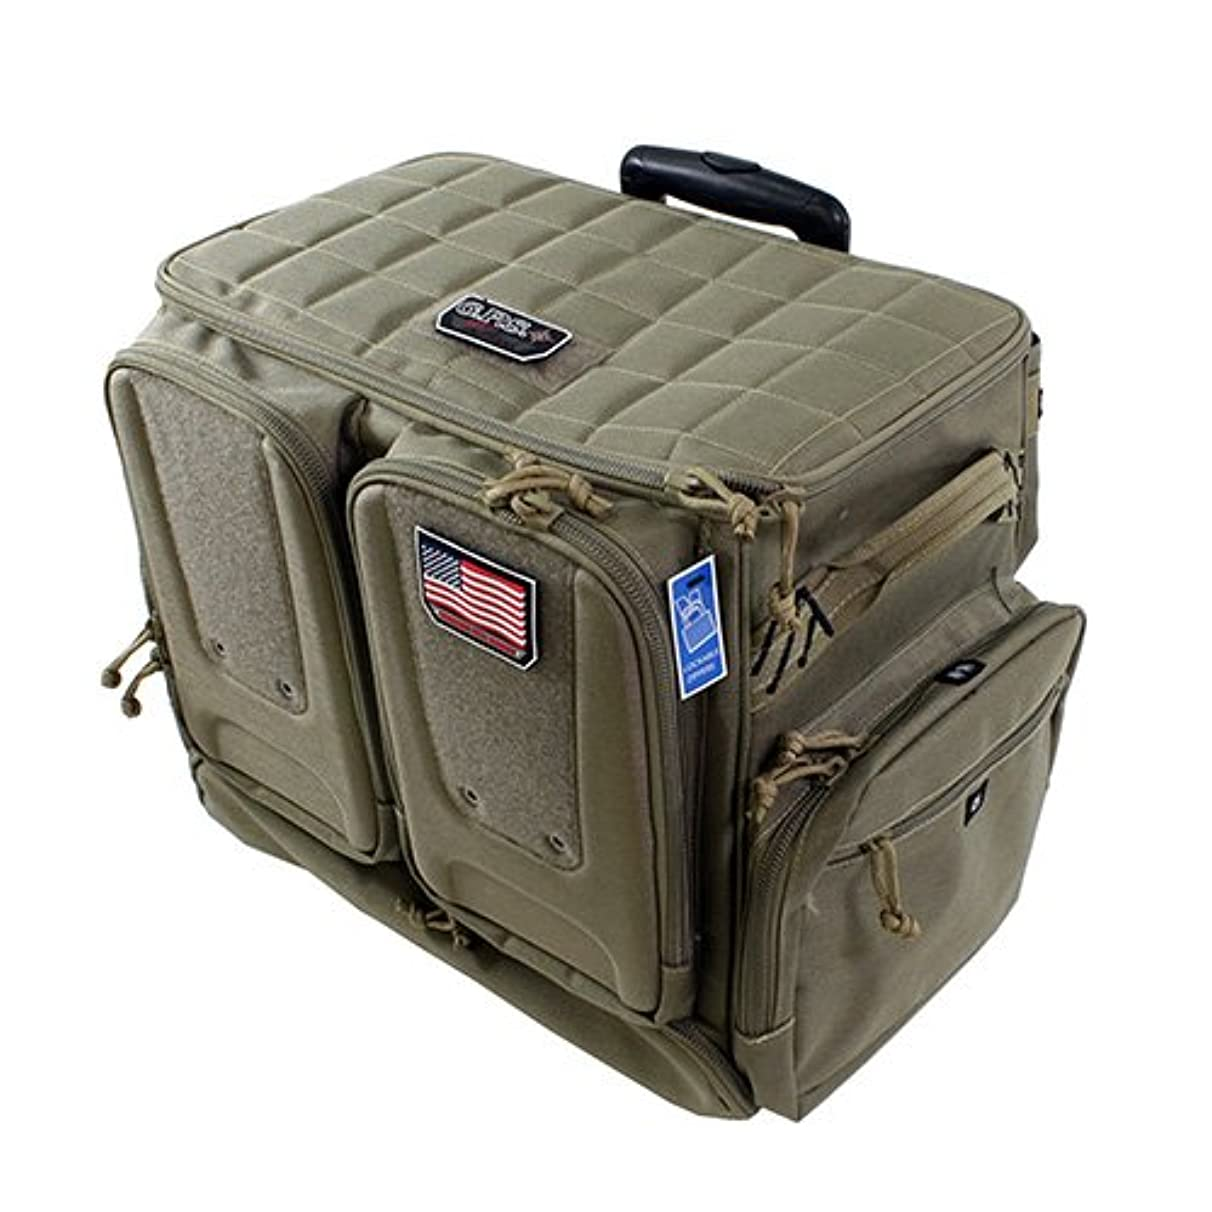 G.P.S. Tactical Rolling Range Bag, Holds 10 Handguns and Related Shooting Gear